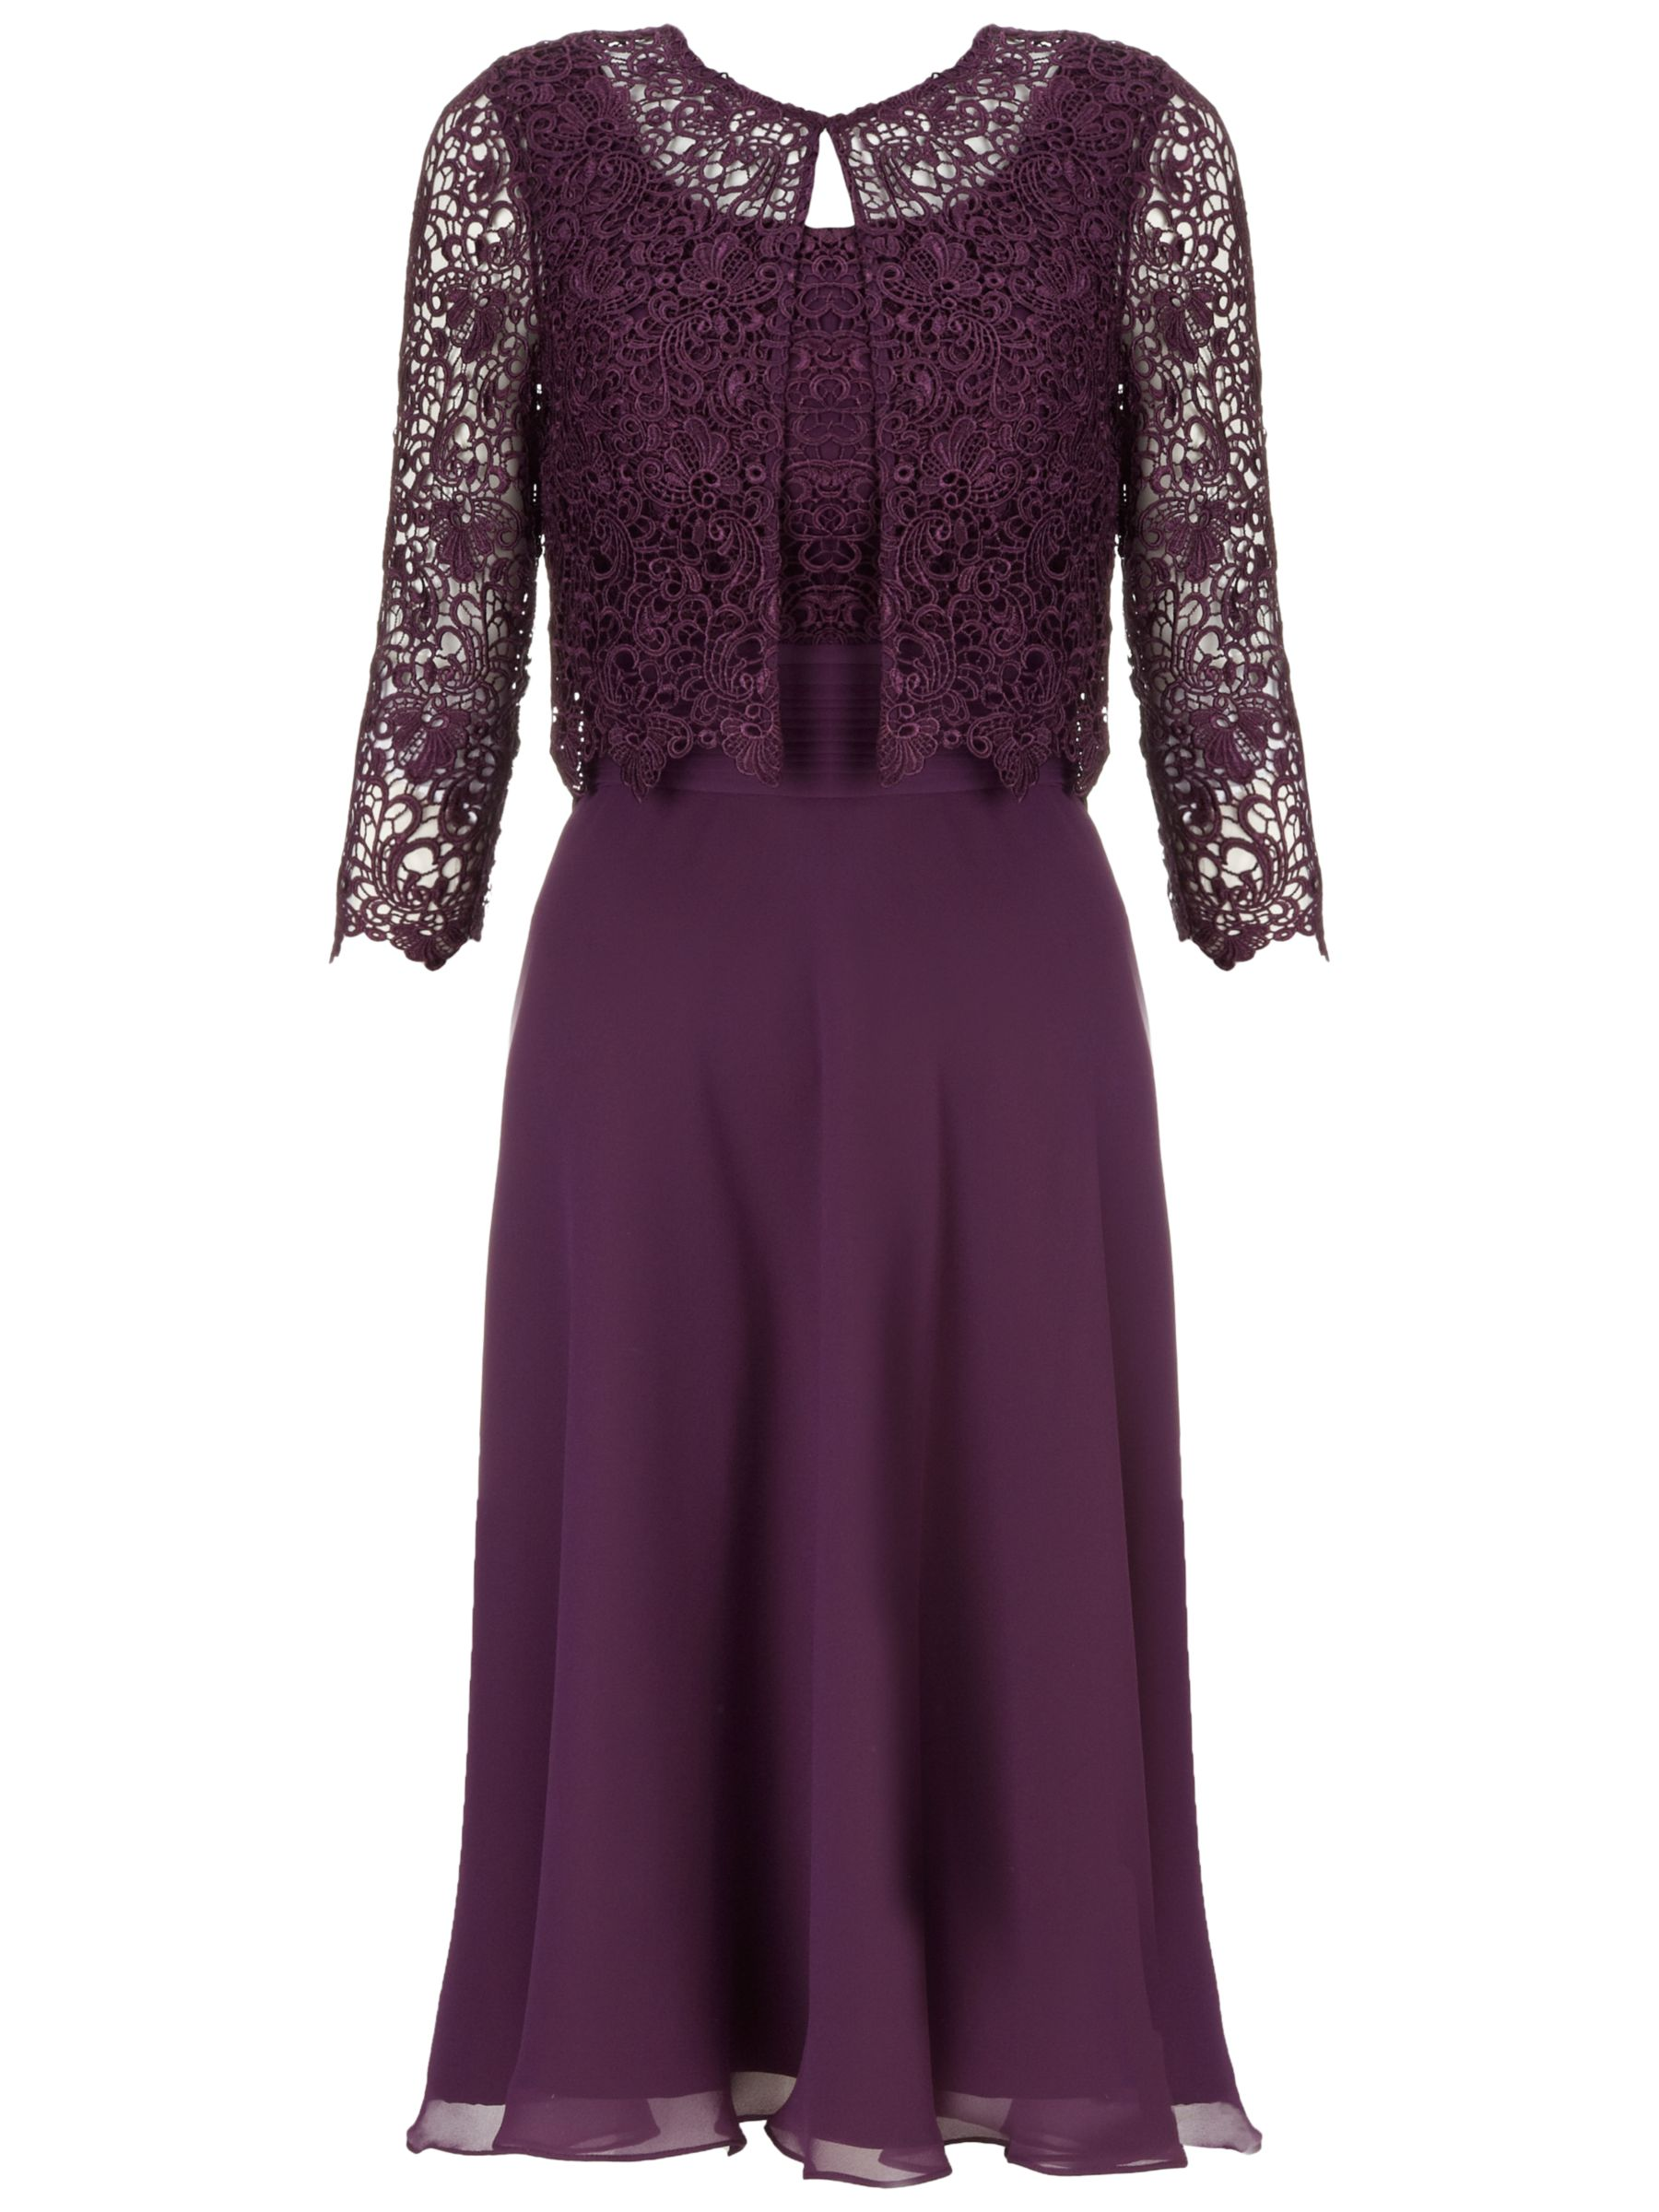 Wedding Outfits For Mother Of The Bride John Lewis - Bridesmaid ...